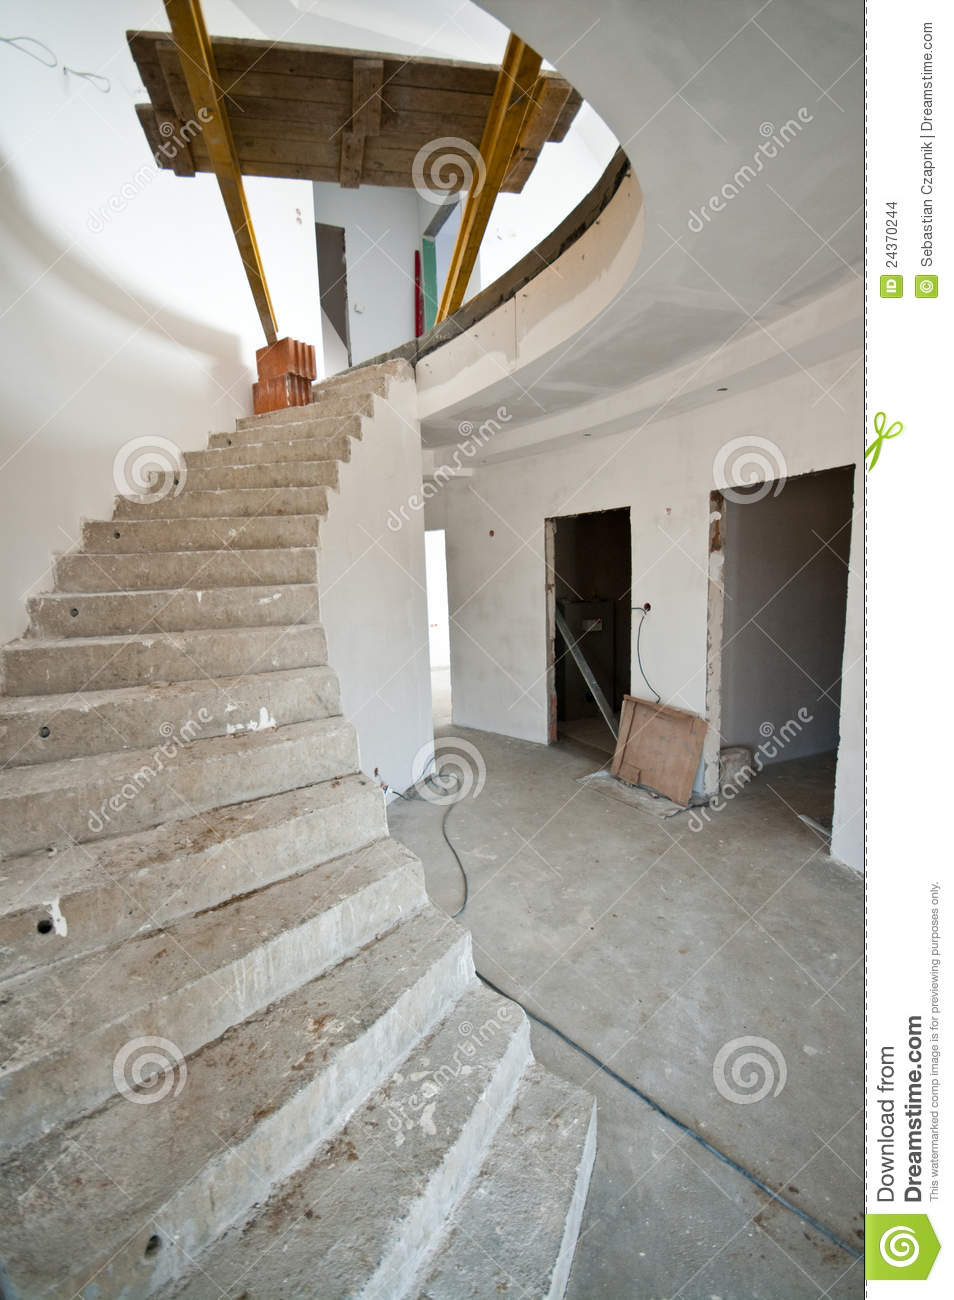 Construccion Baño Bajo Escalera:Spiral Staircase Under Construction